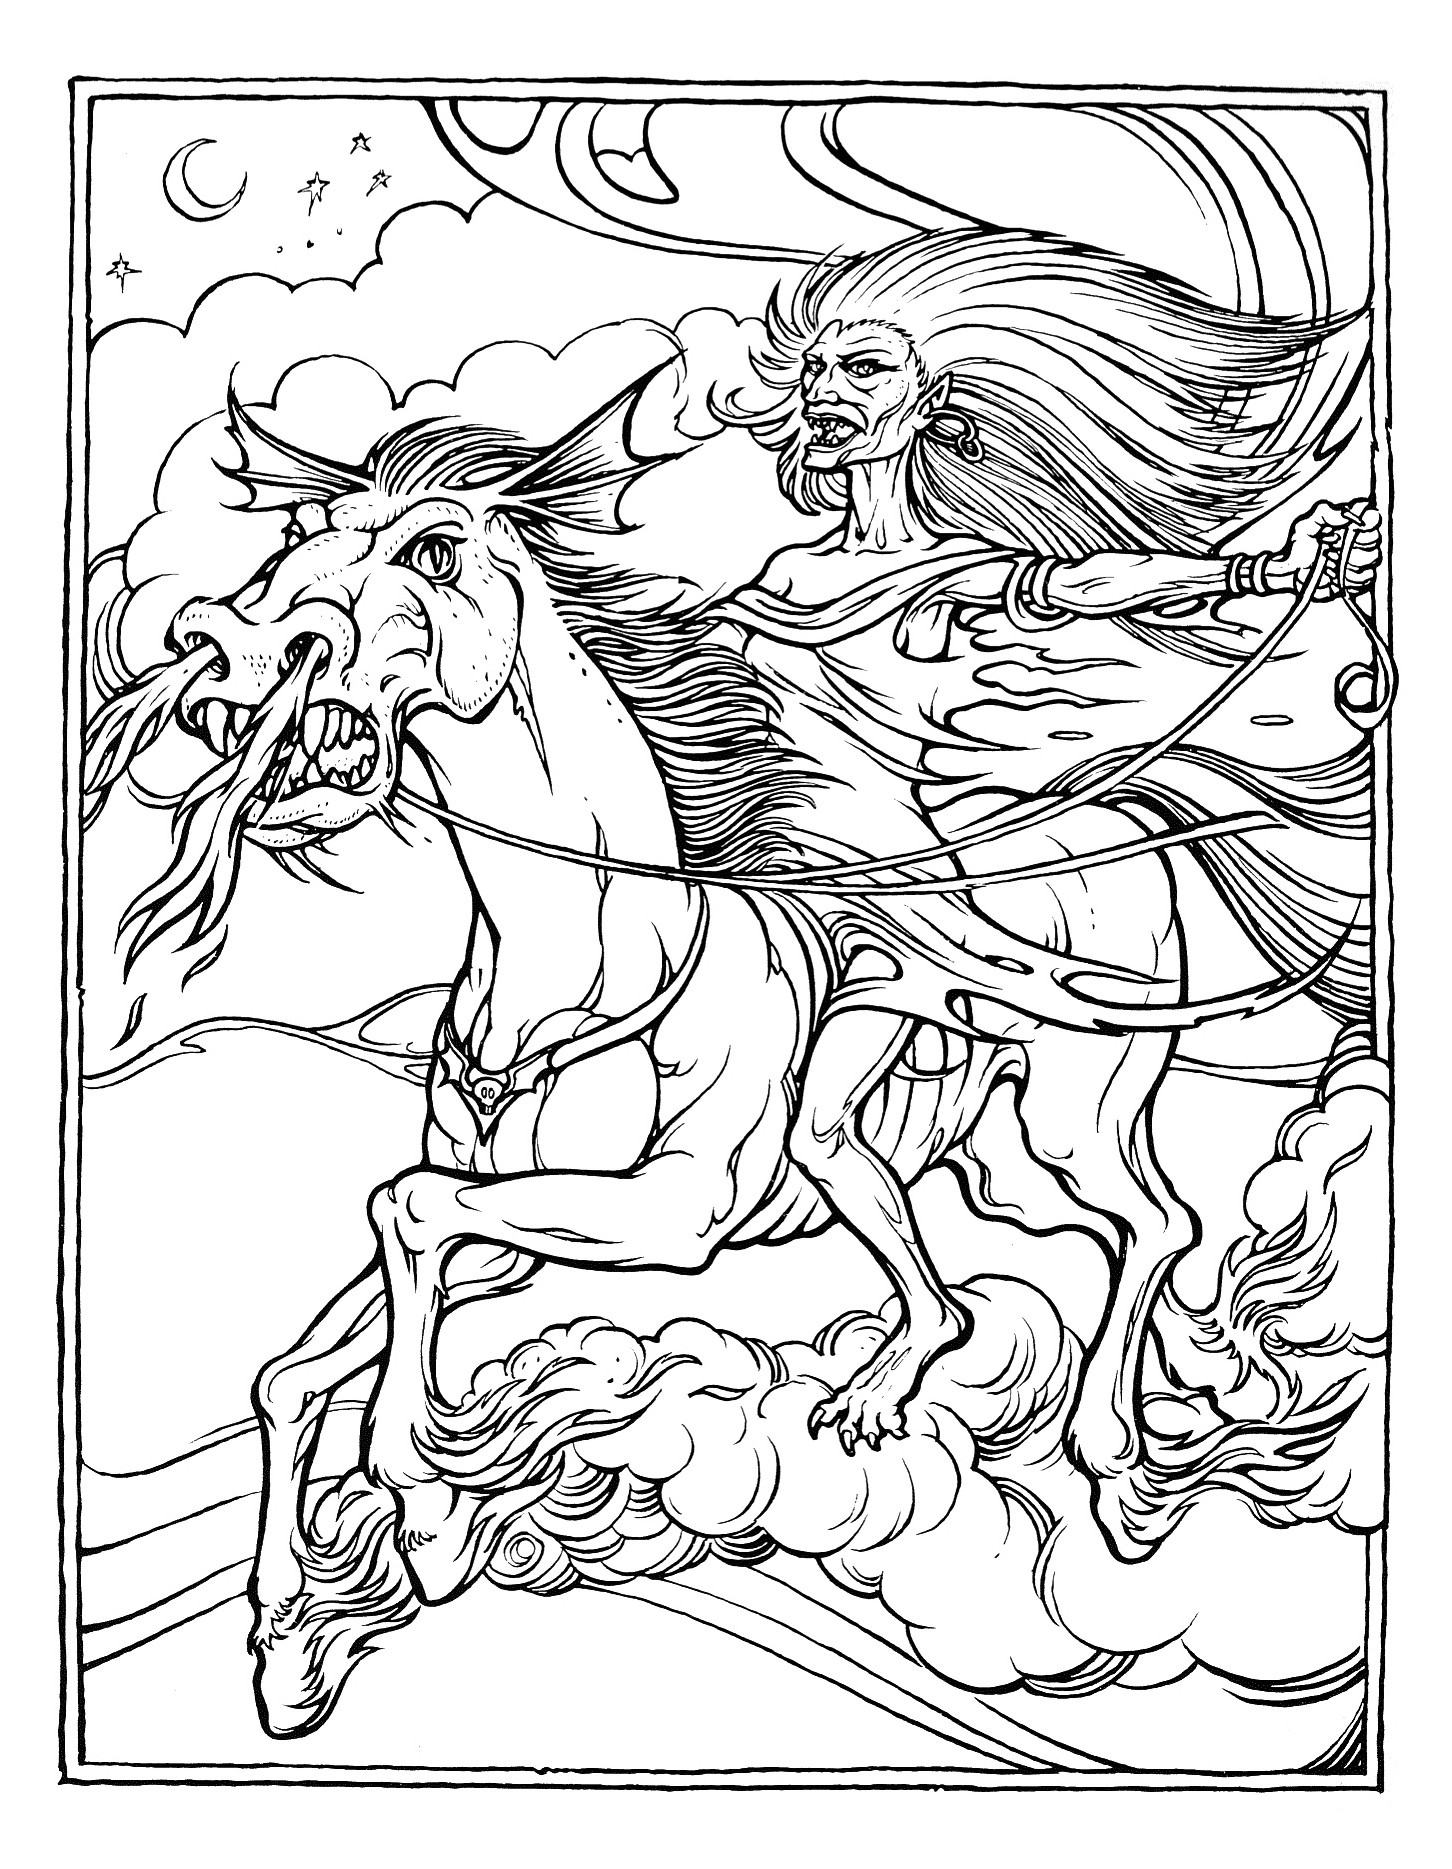 Best ideas about Dragons Coloring Pages For Adults . Save or Pin Dragon Coloring Pages Now.